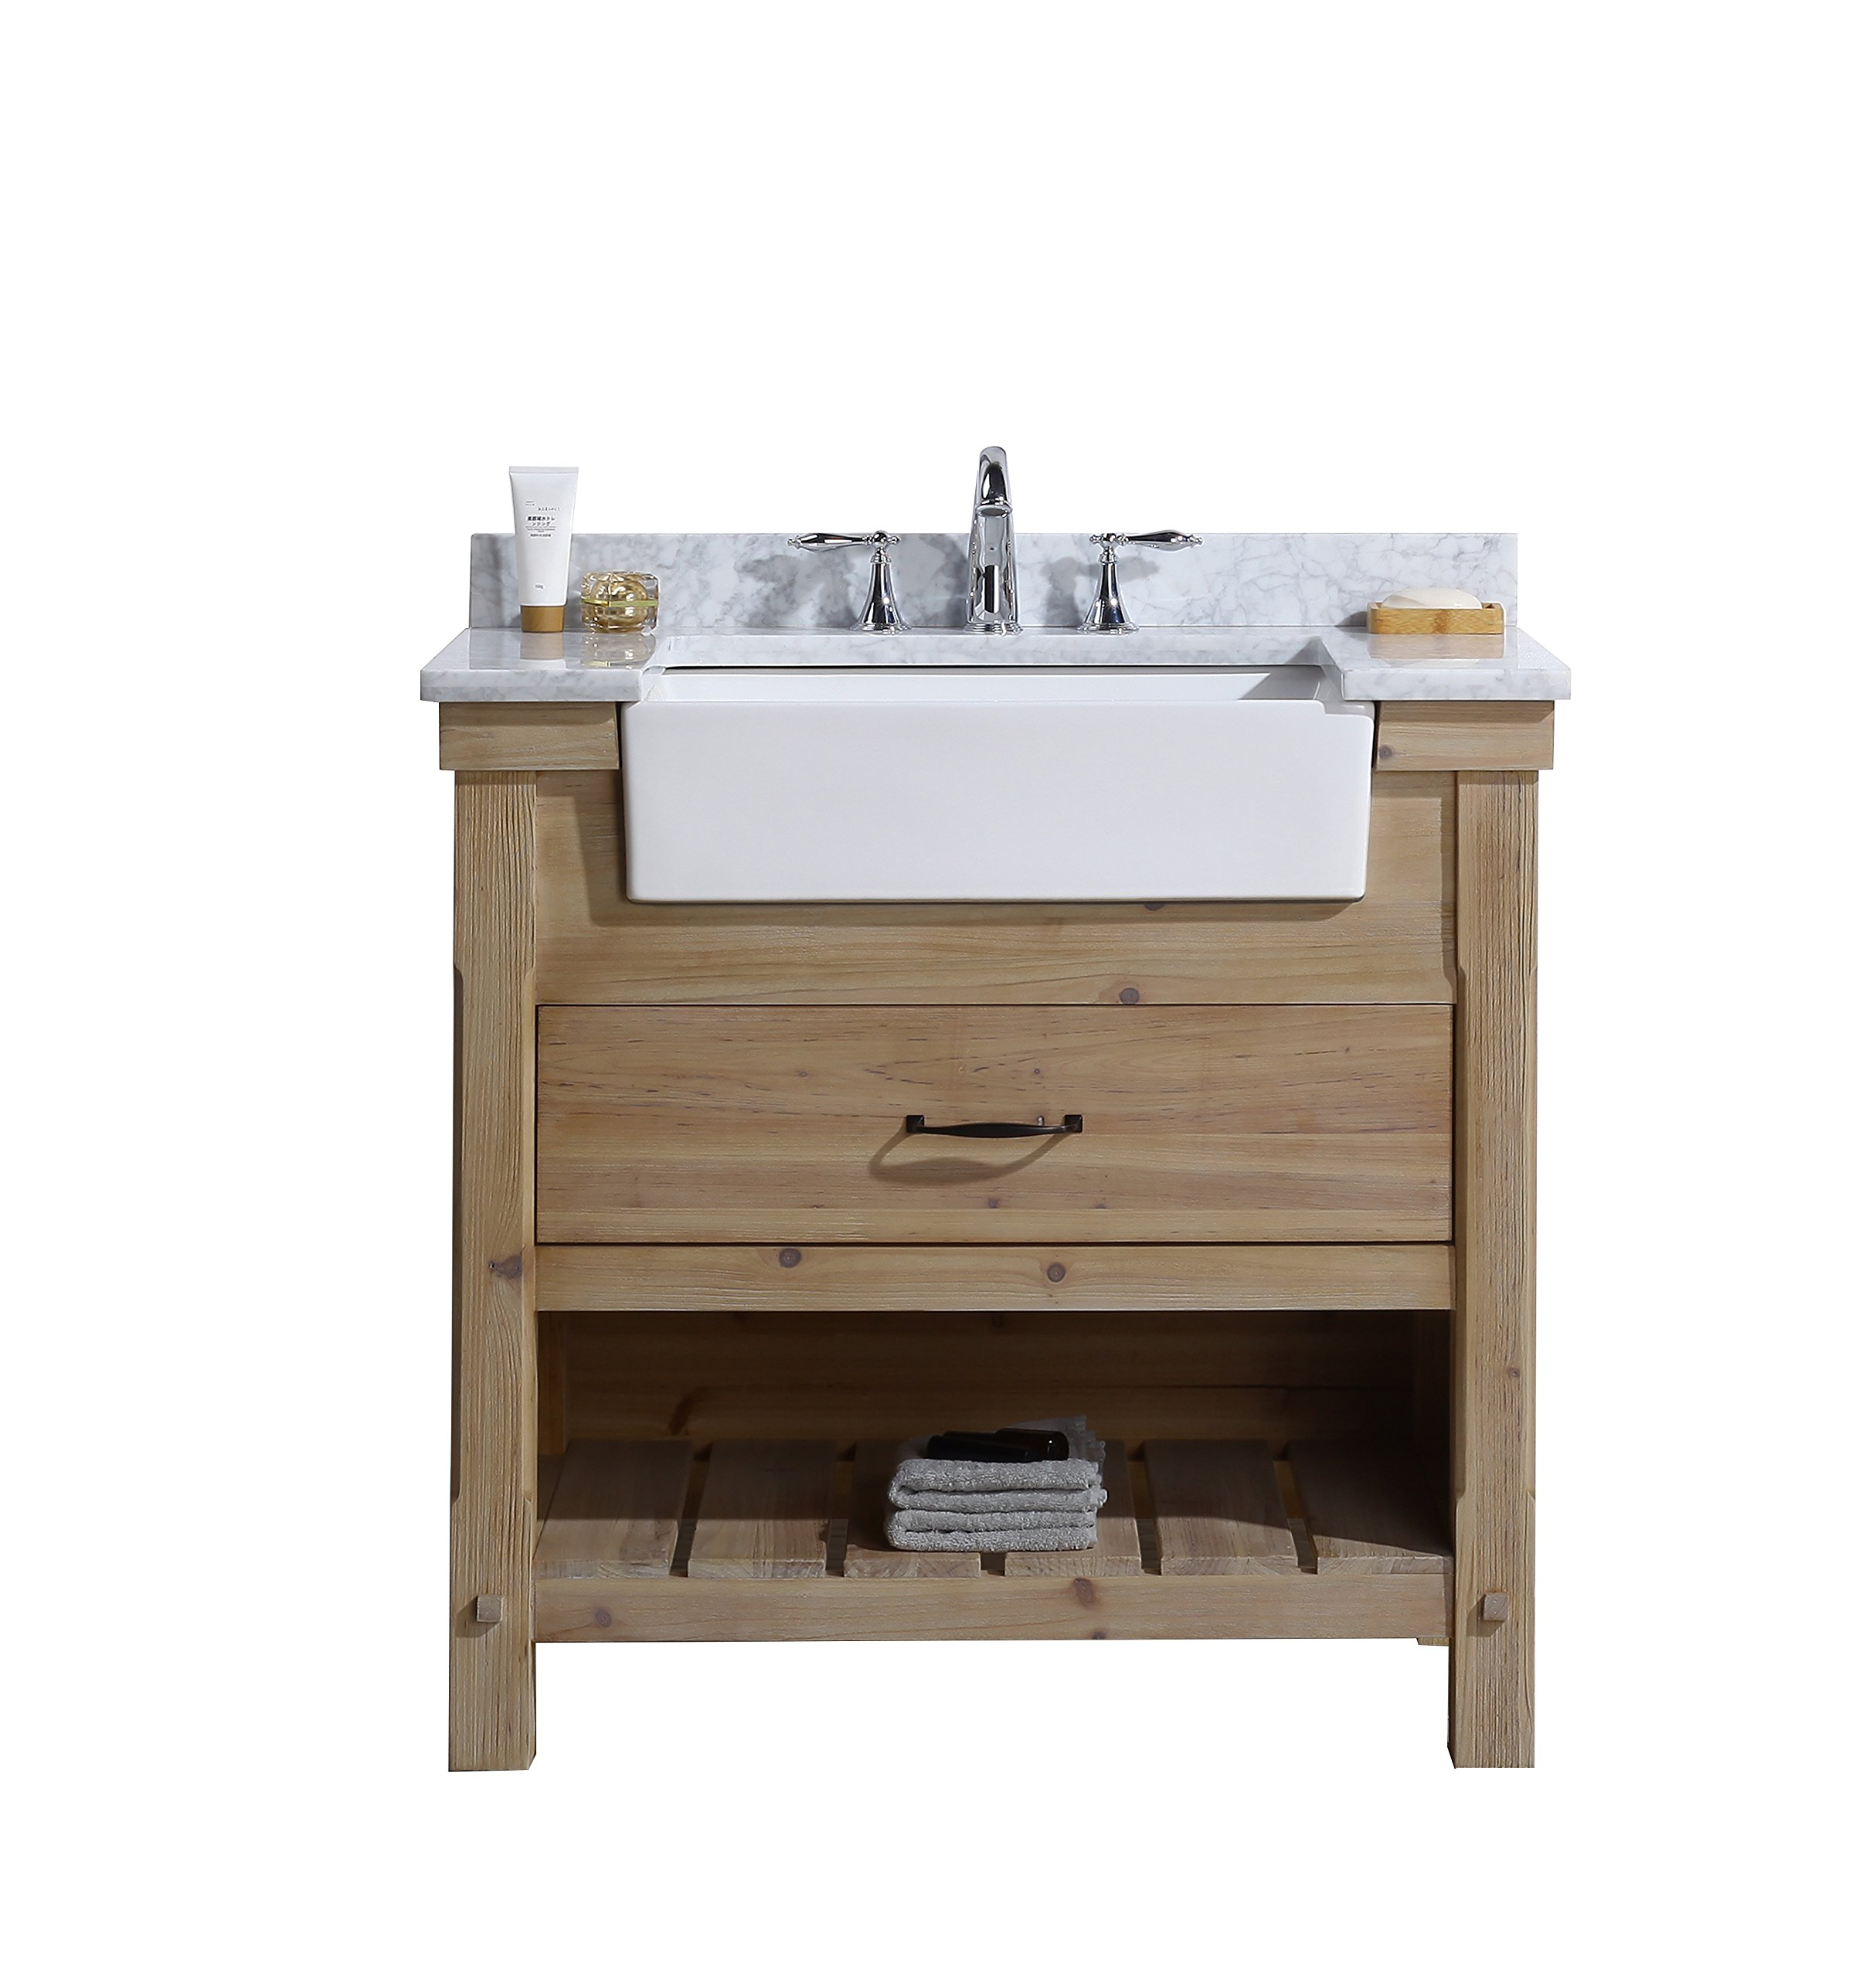 "Ari Kitchen and Bath  Marina Vanity, Driftwood, 36"" W X 22"" D X 34.5"" H - Solid wood Construction using Tenon and mortise Joinery Dovetail Joinery drawers Handcrafted furniture - bathroom-vanities, bathroom-fixtures-hardware, bathroom - 81lruyHPGeL -"